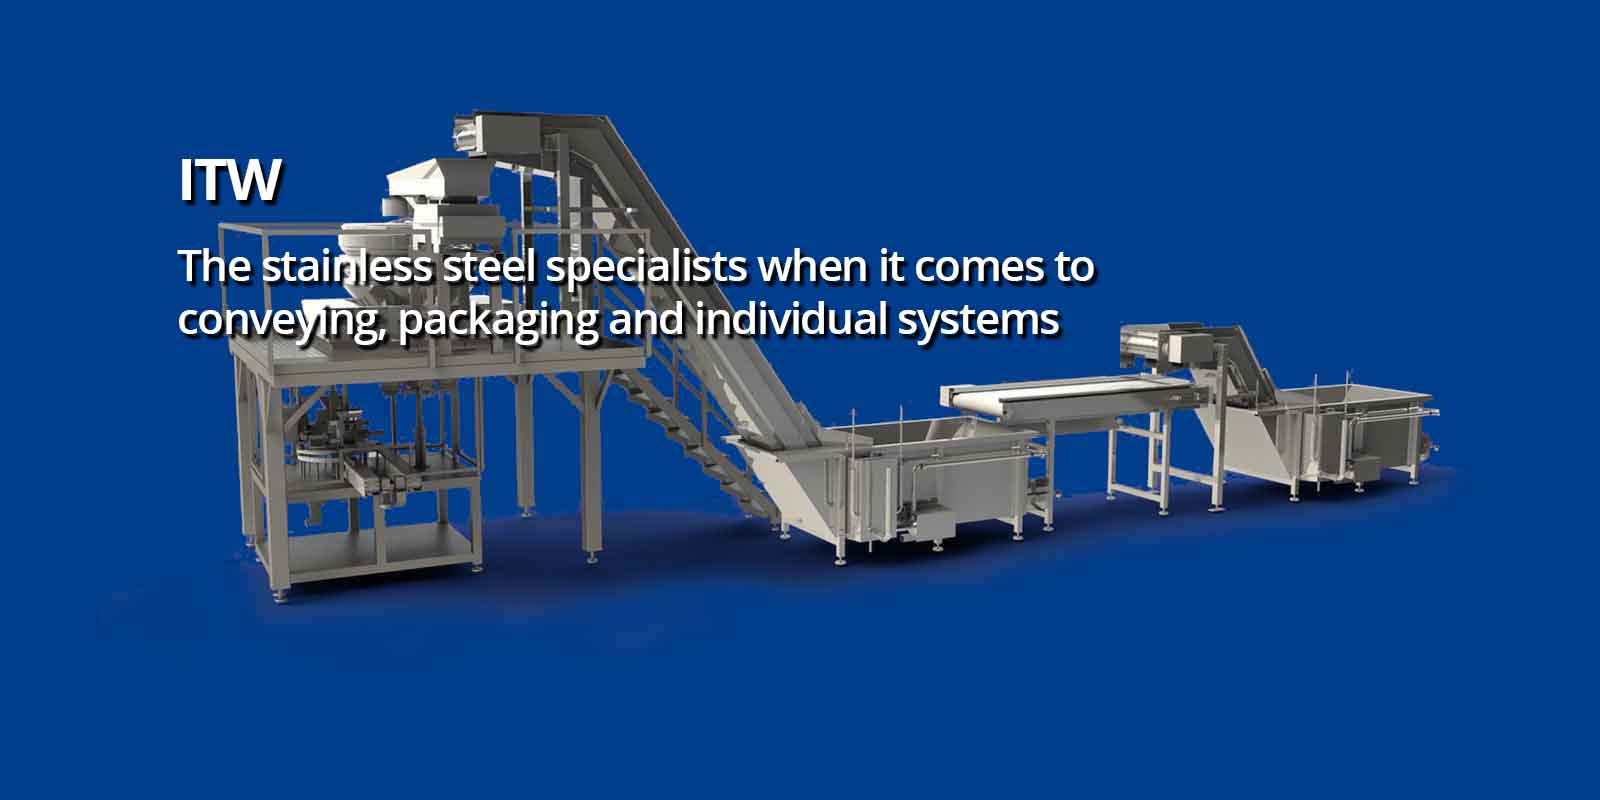 ITW The stainless steel specialists when it comes to conveying, packaging and individual systems